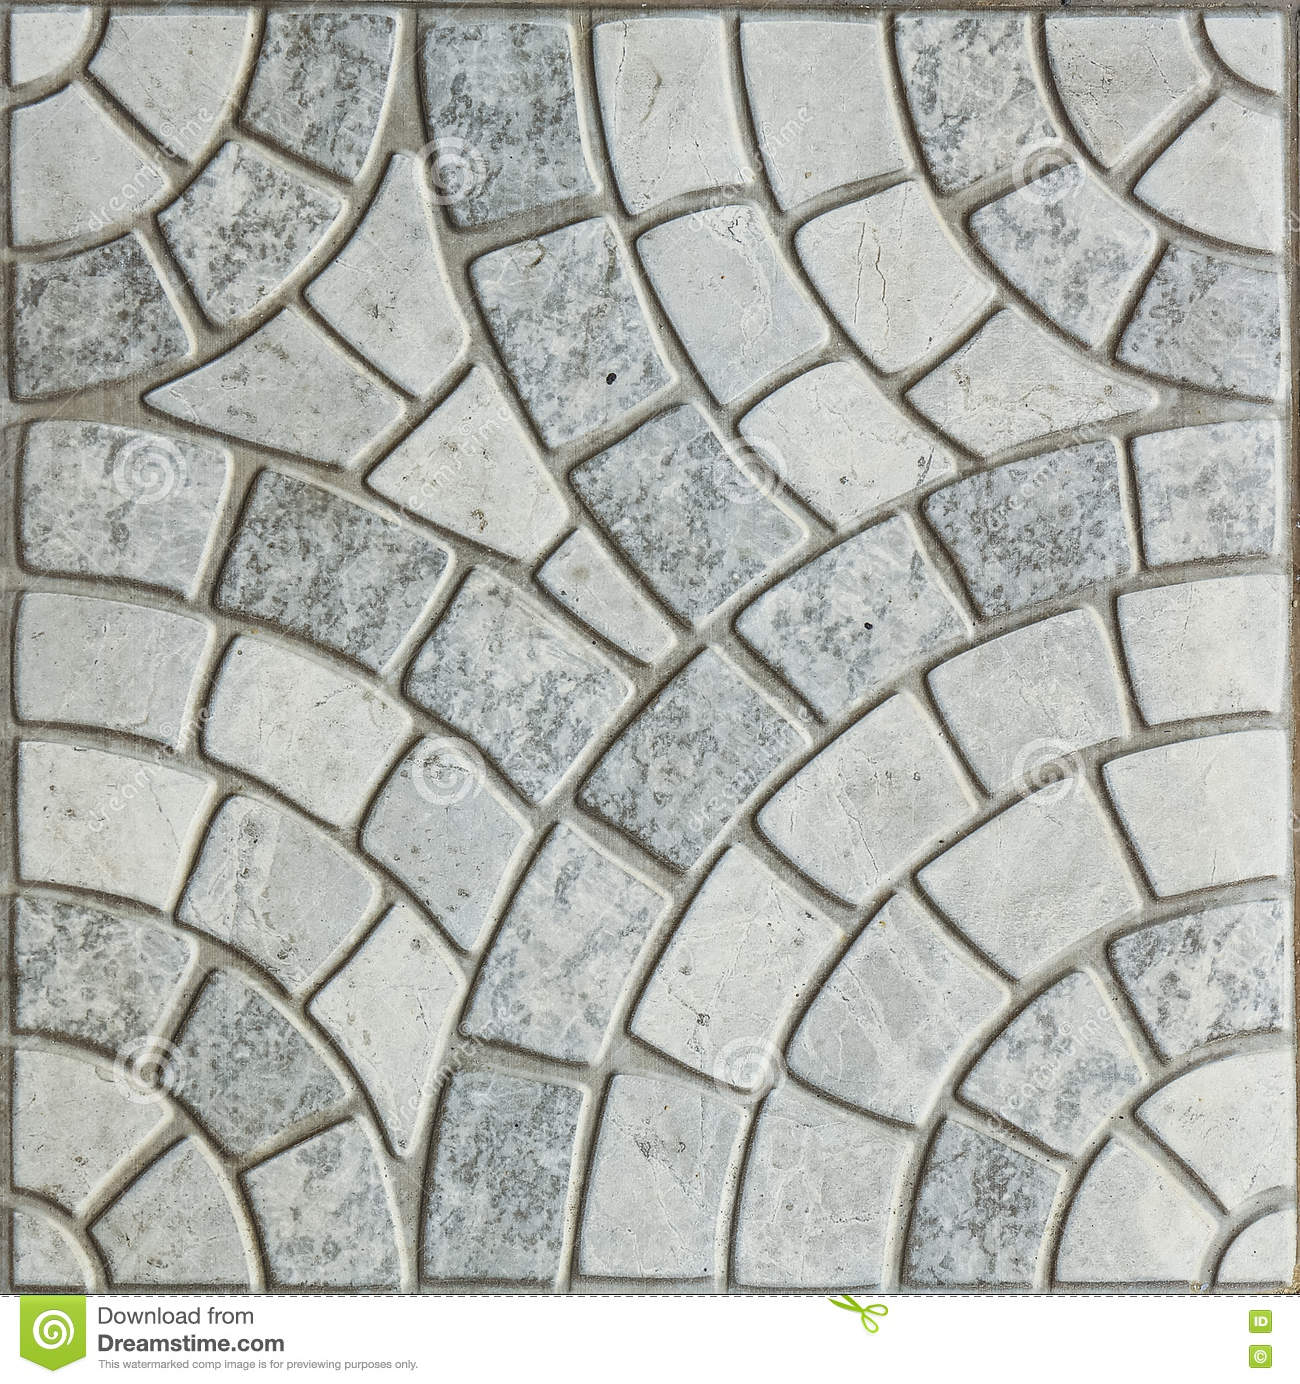 Gray Paving Slabs - modell av cirkeln